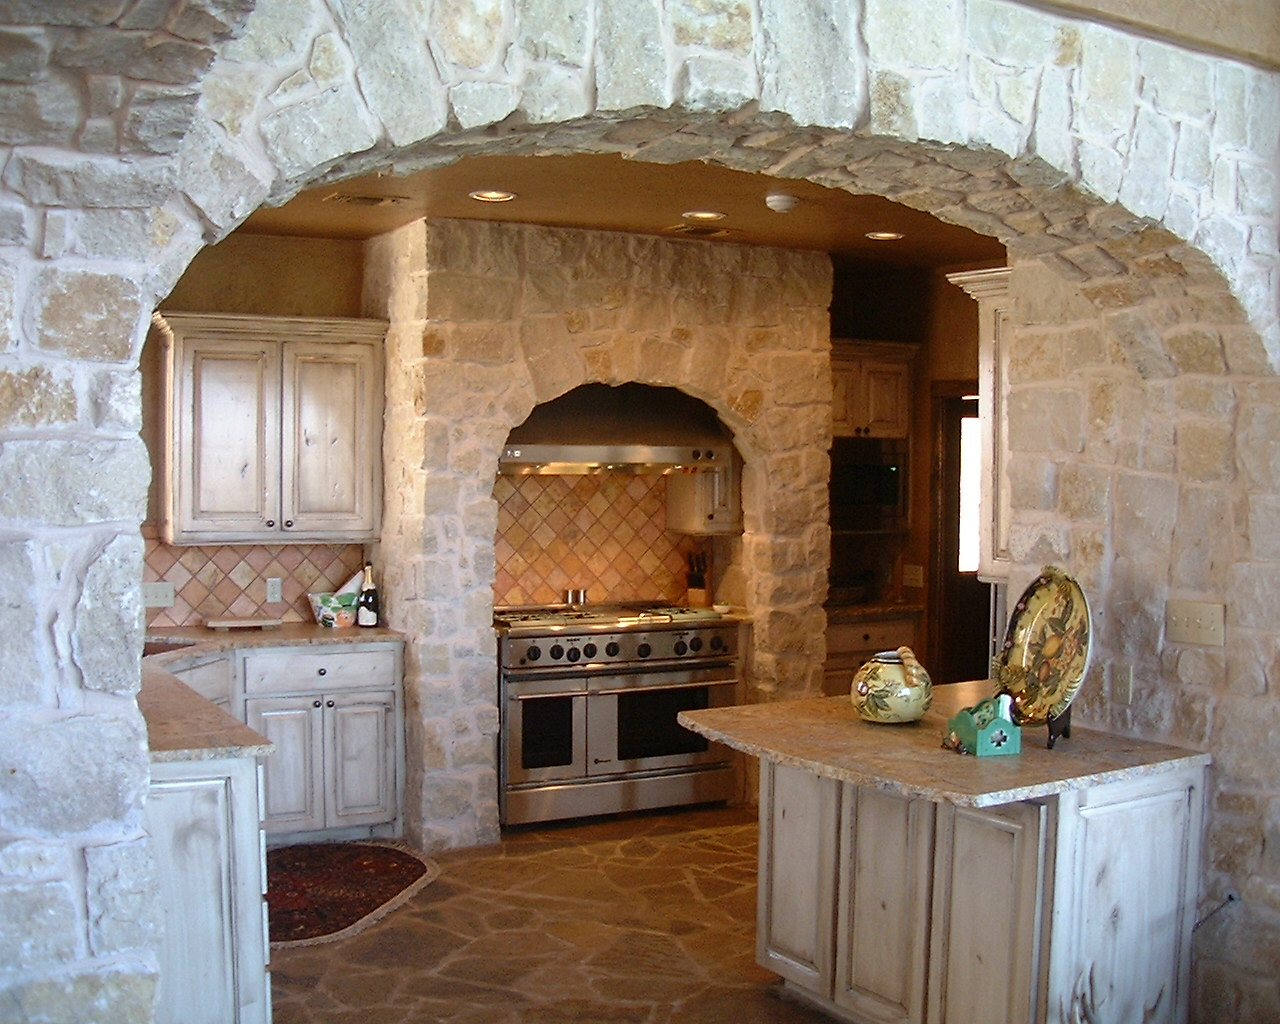 nice hill country stone #2: Cosy hill country stone